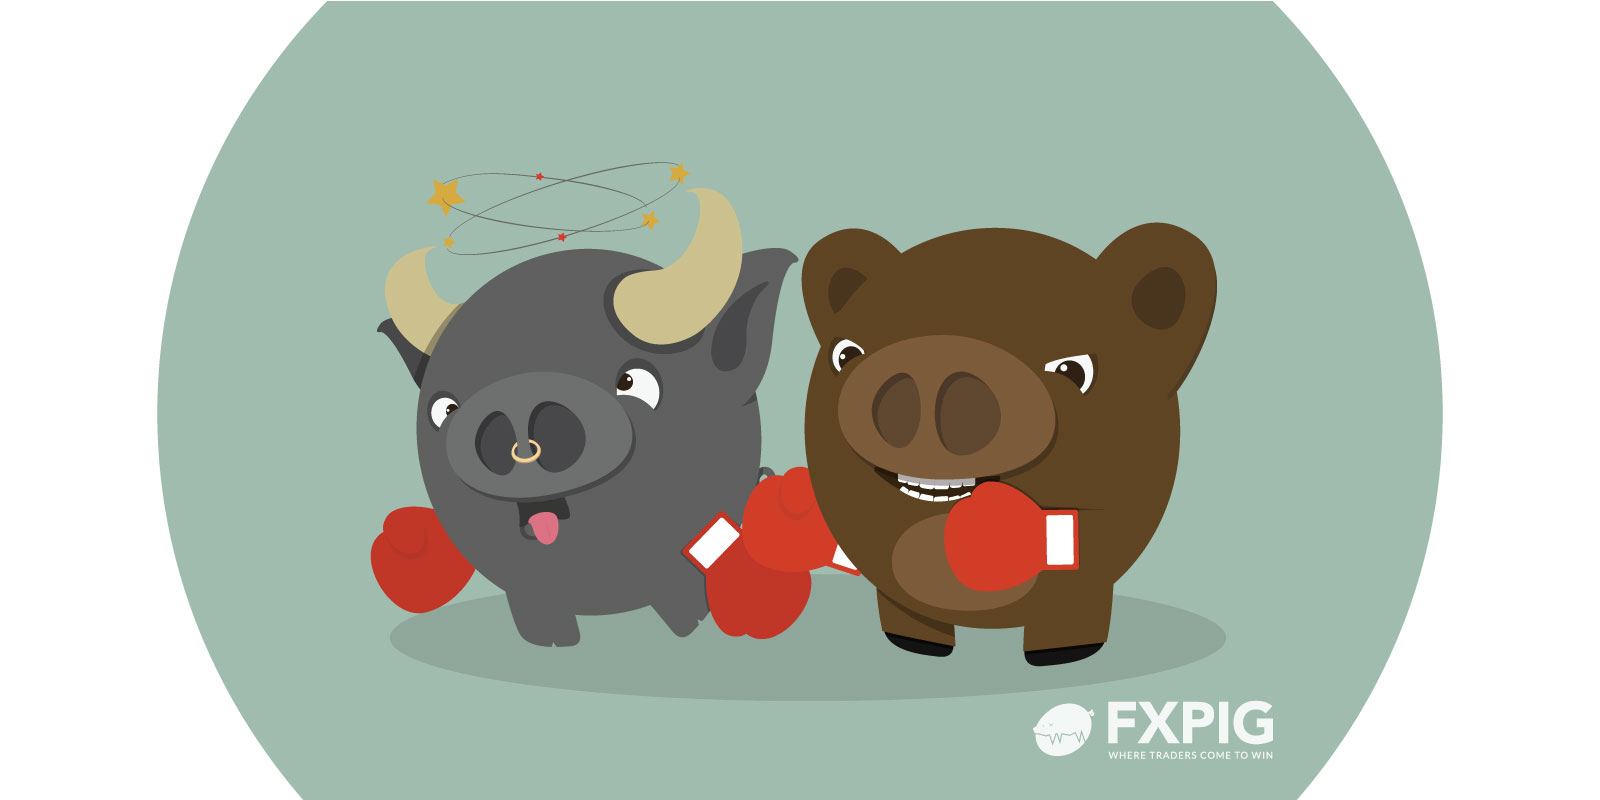 FOREX_Bulls-and-bears_daily-technical-analysis_FXPIG